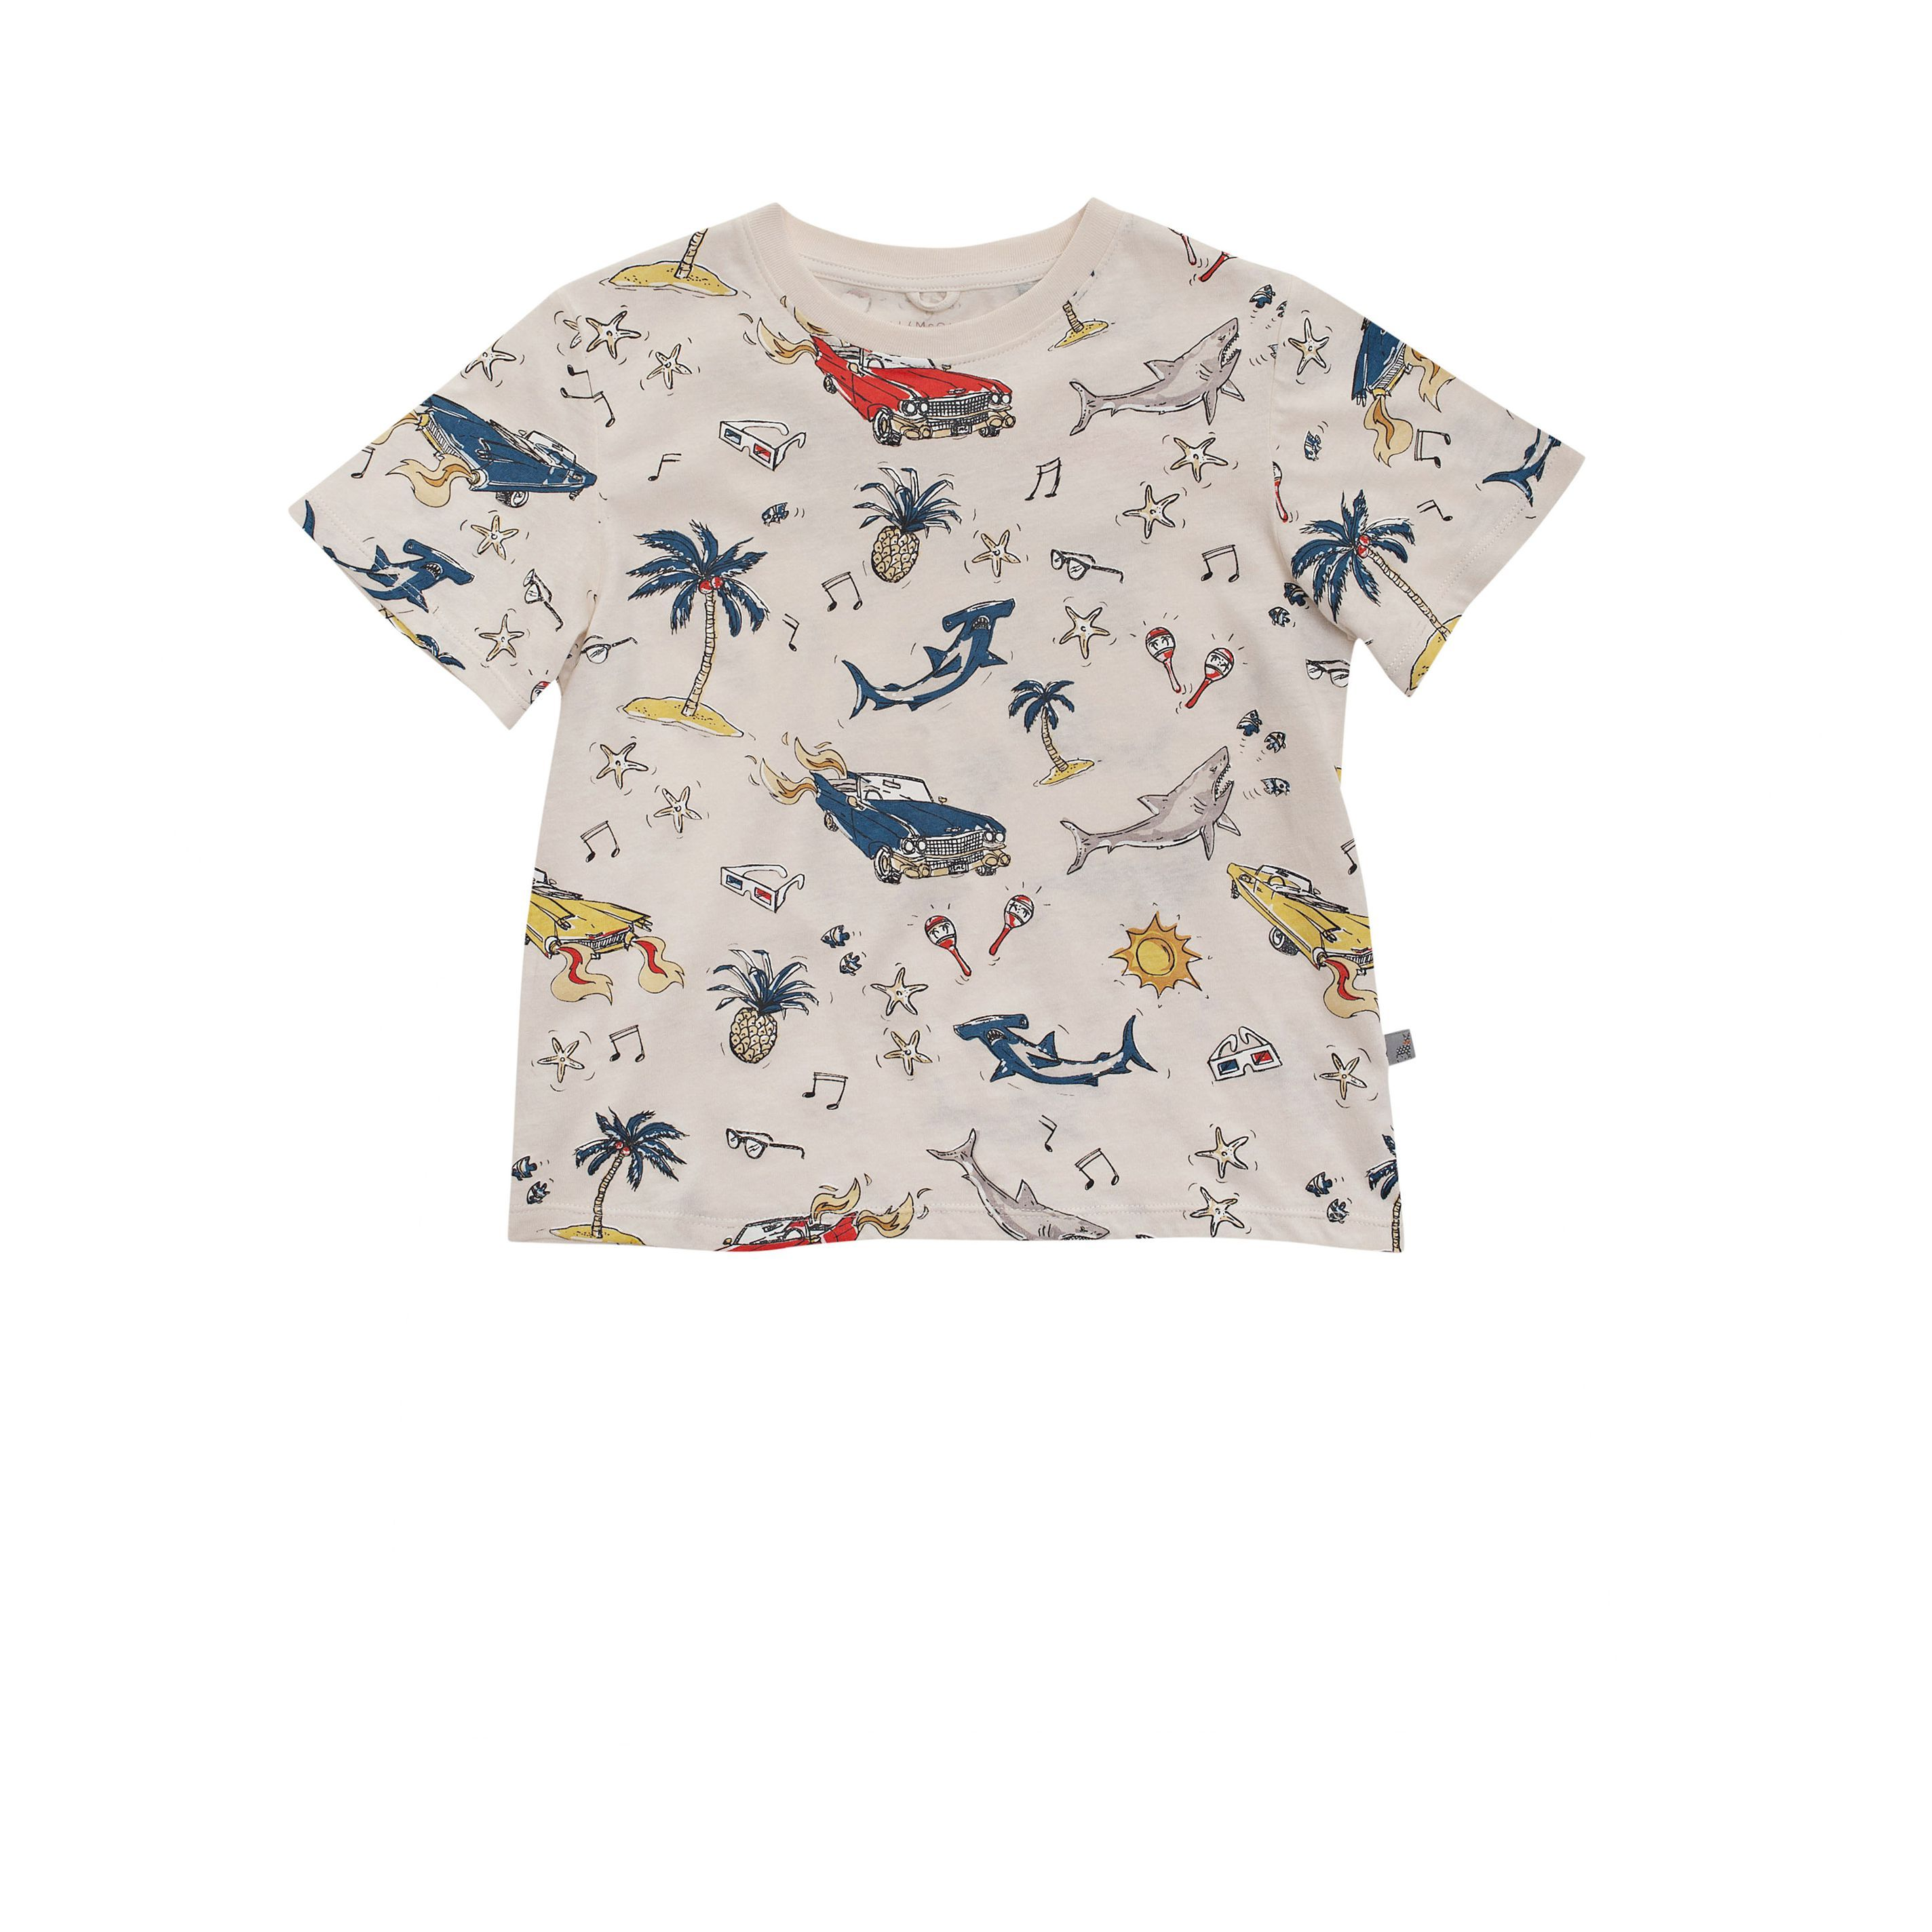 Stella Mccartney Kids - ARLO 50's PRINT T SHIRT - Shop at the official Online Store